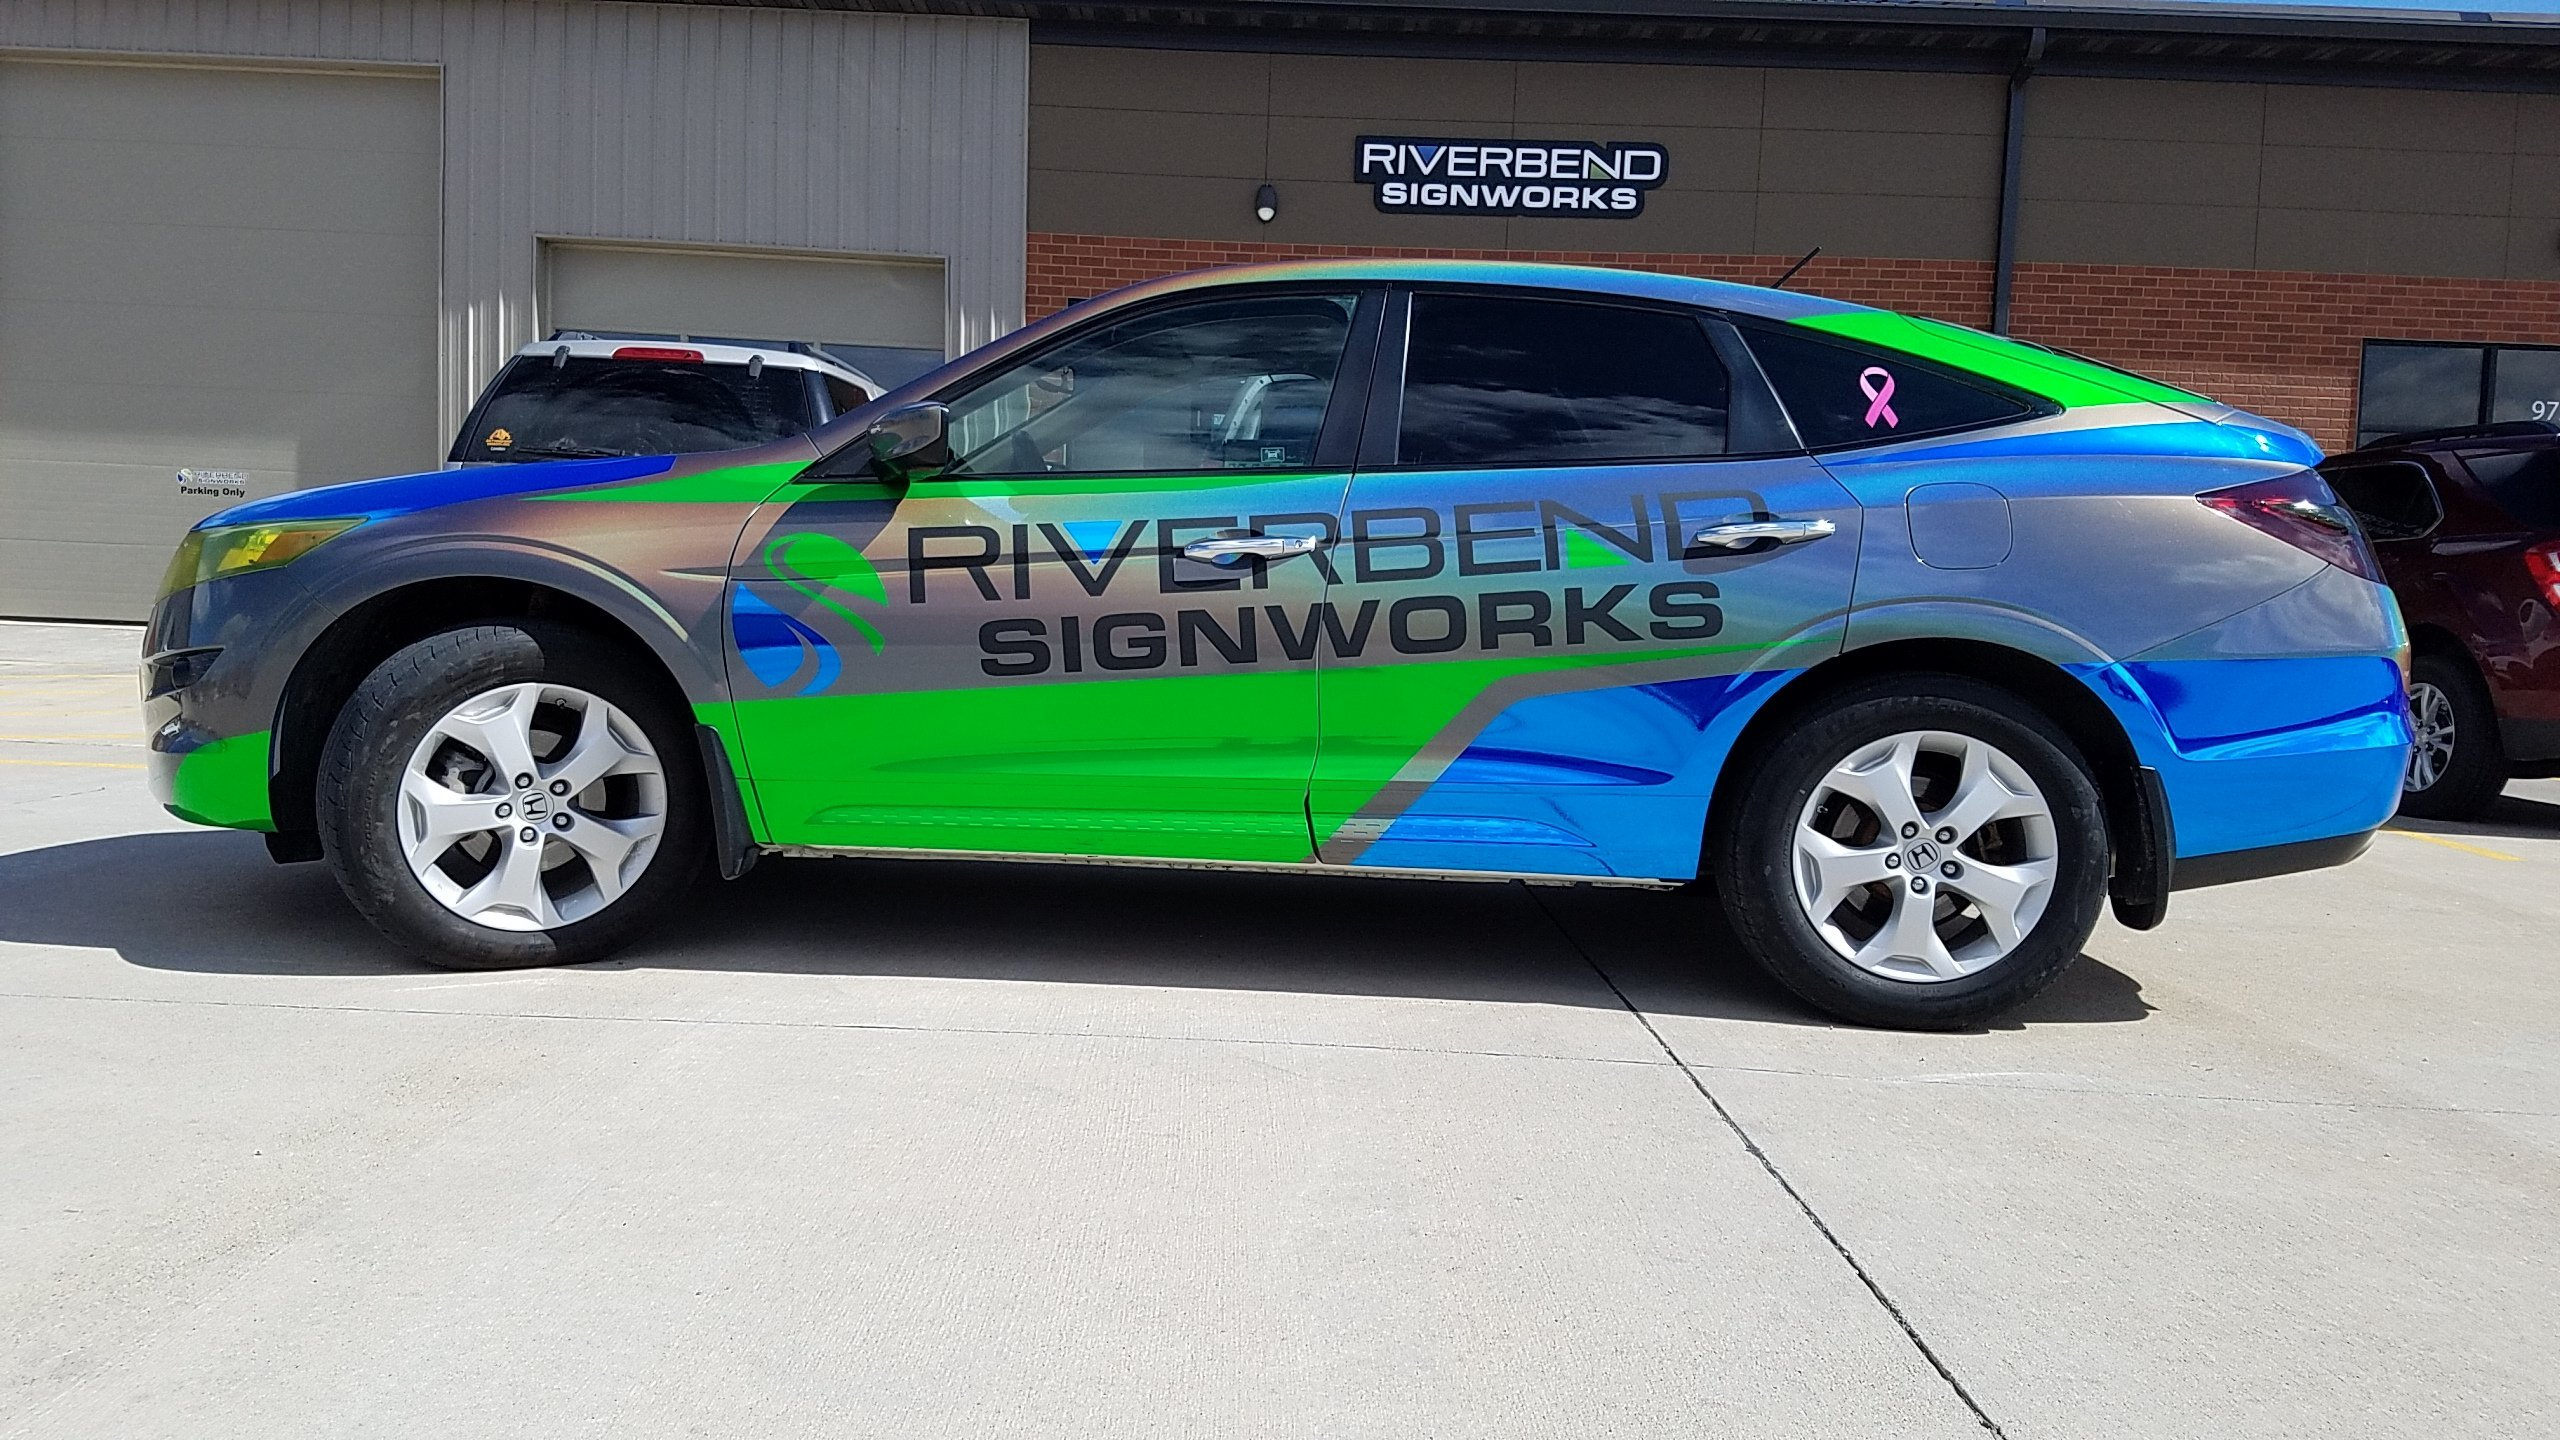 Iridescent car wrap for Riverbend Signworks in Iowa and Illinois